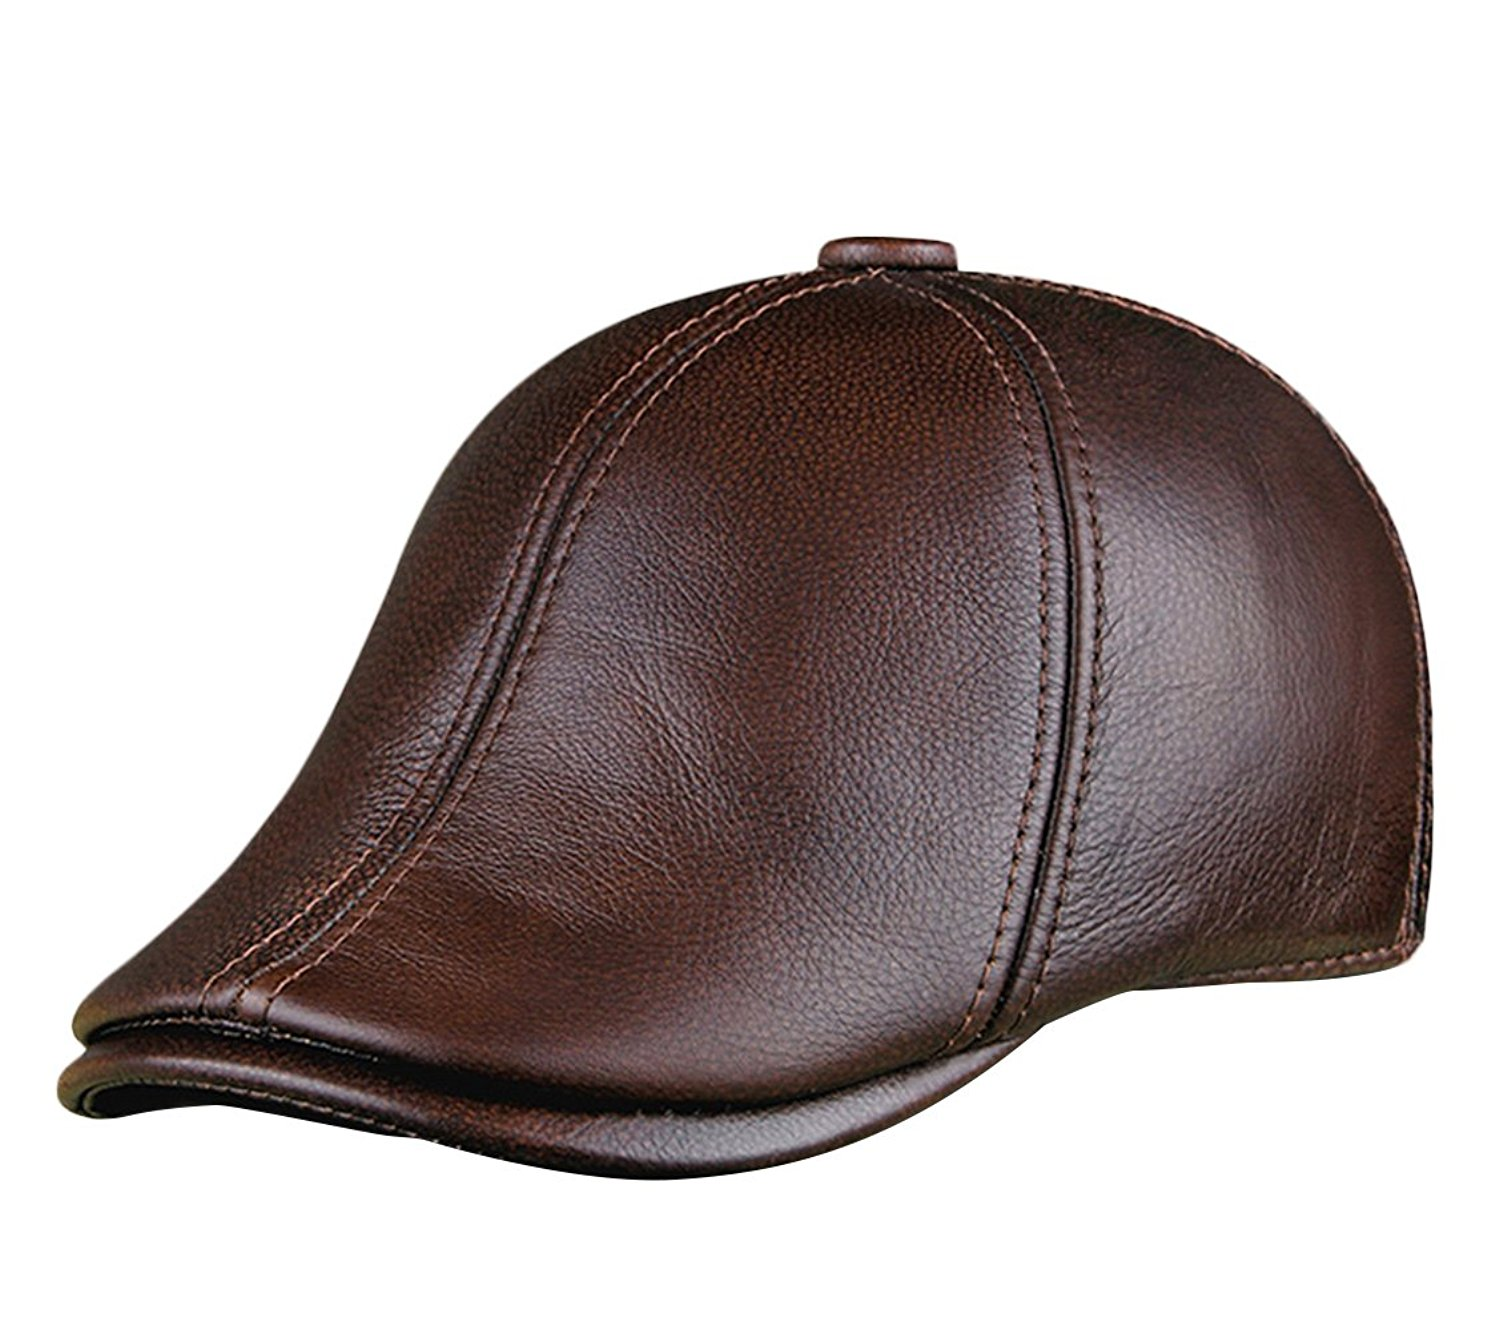 5af3d061007 Get Quotations · Insun Men s Genuine Leather Newsboy Cap Winter Warm Flap  Ivy Cap